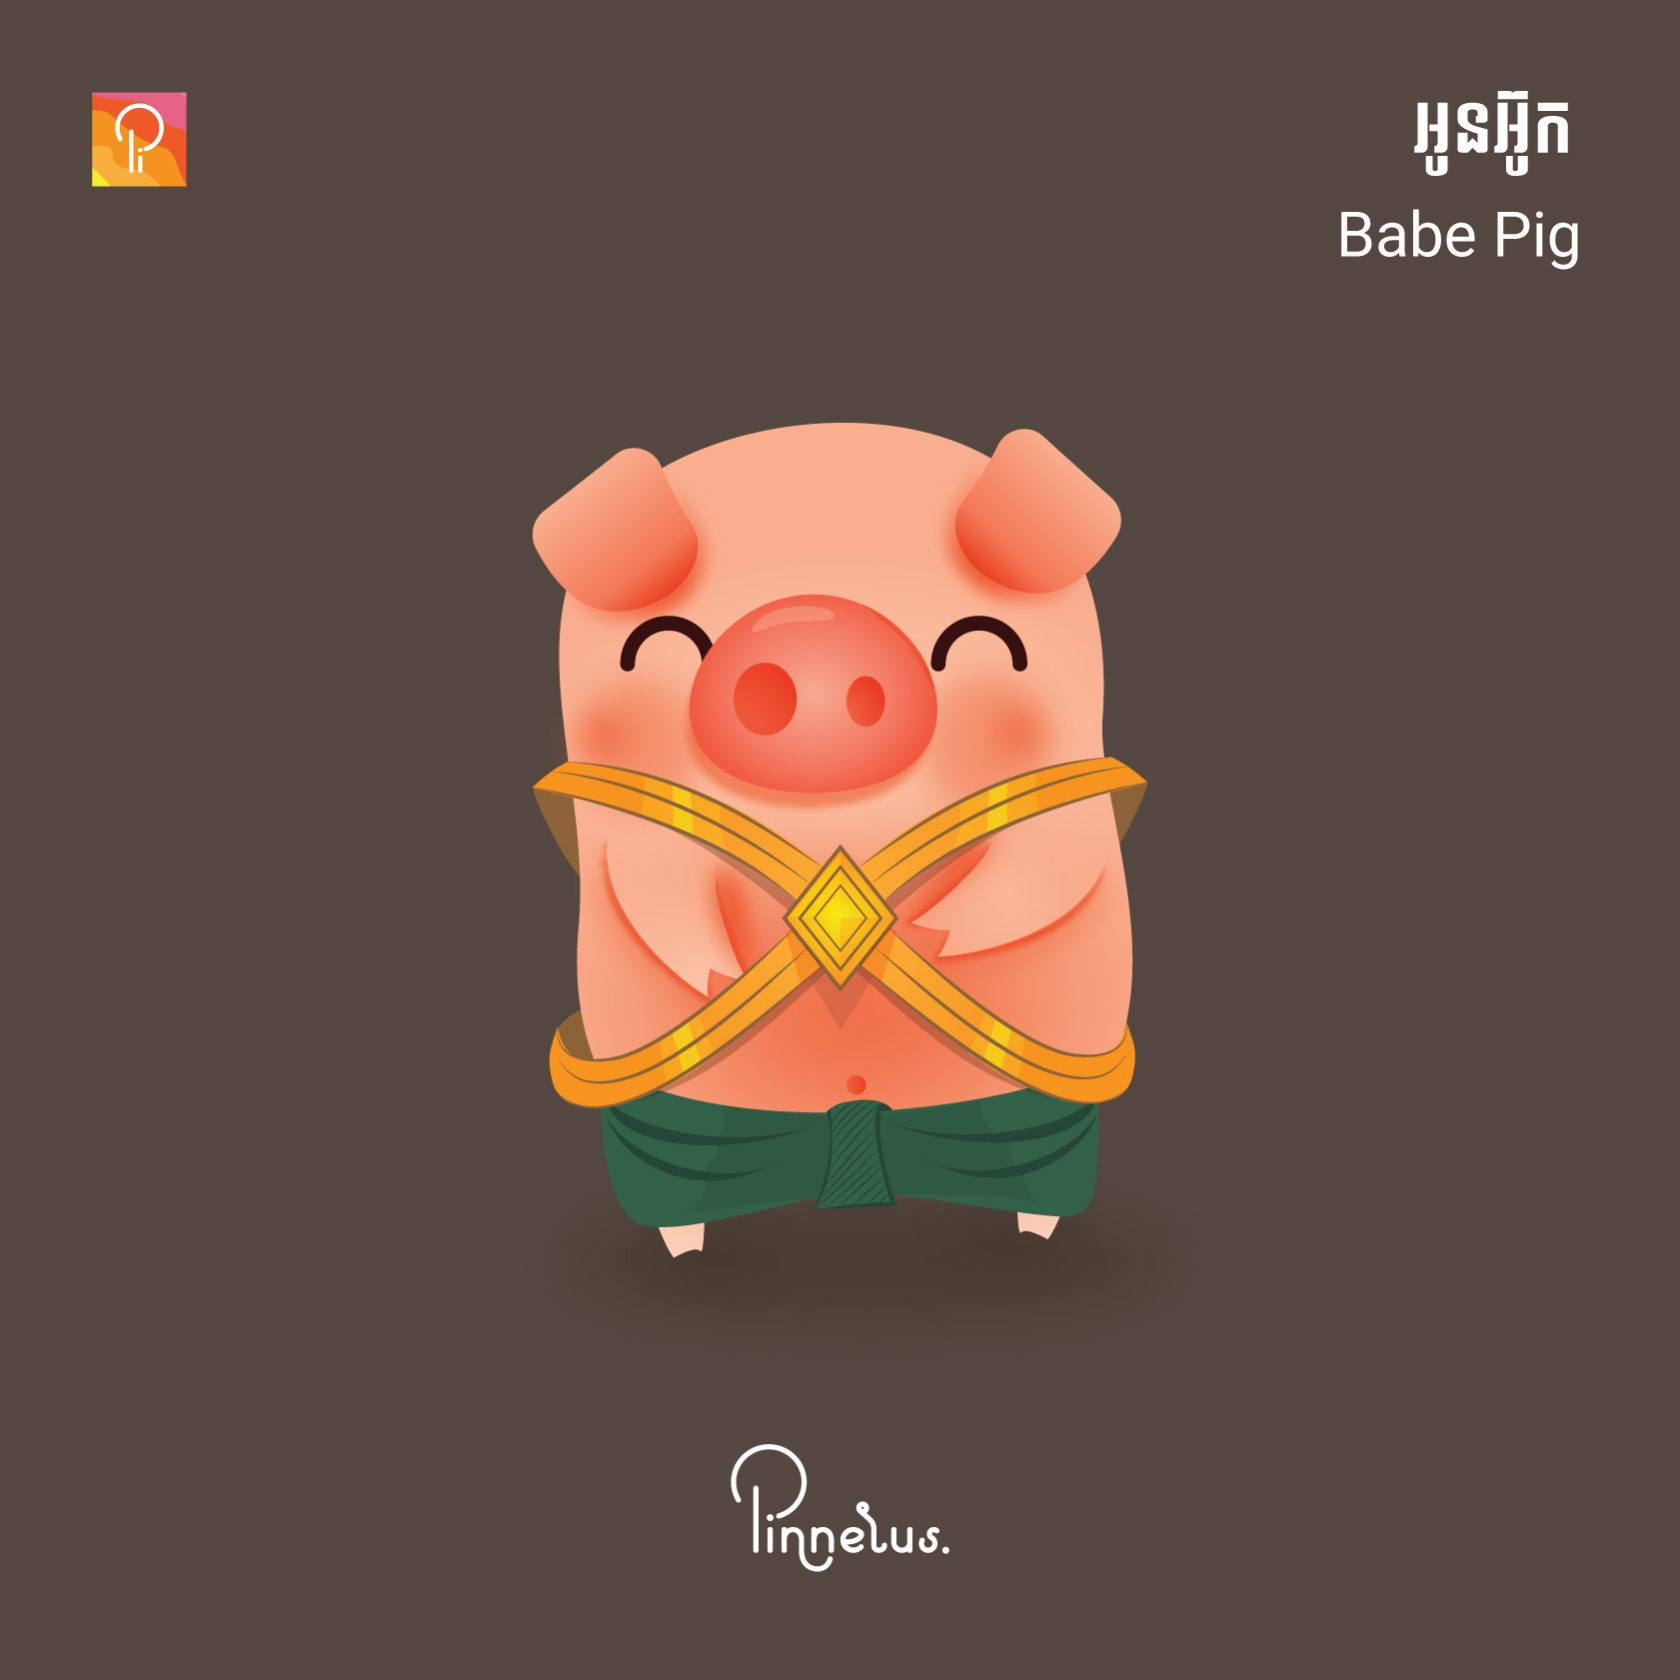 Pig vector source - babe pig e1558119658938 - Source